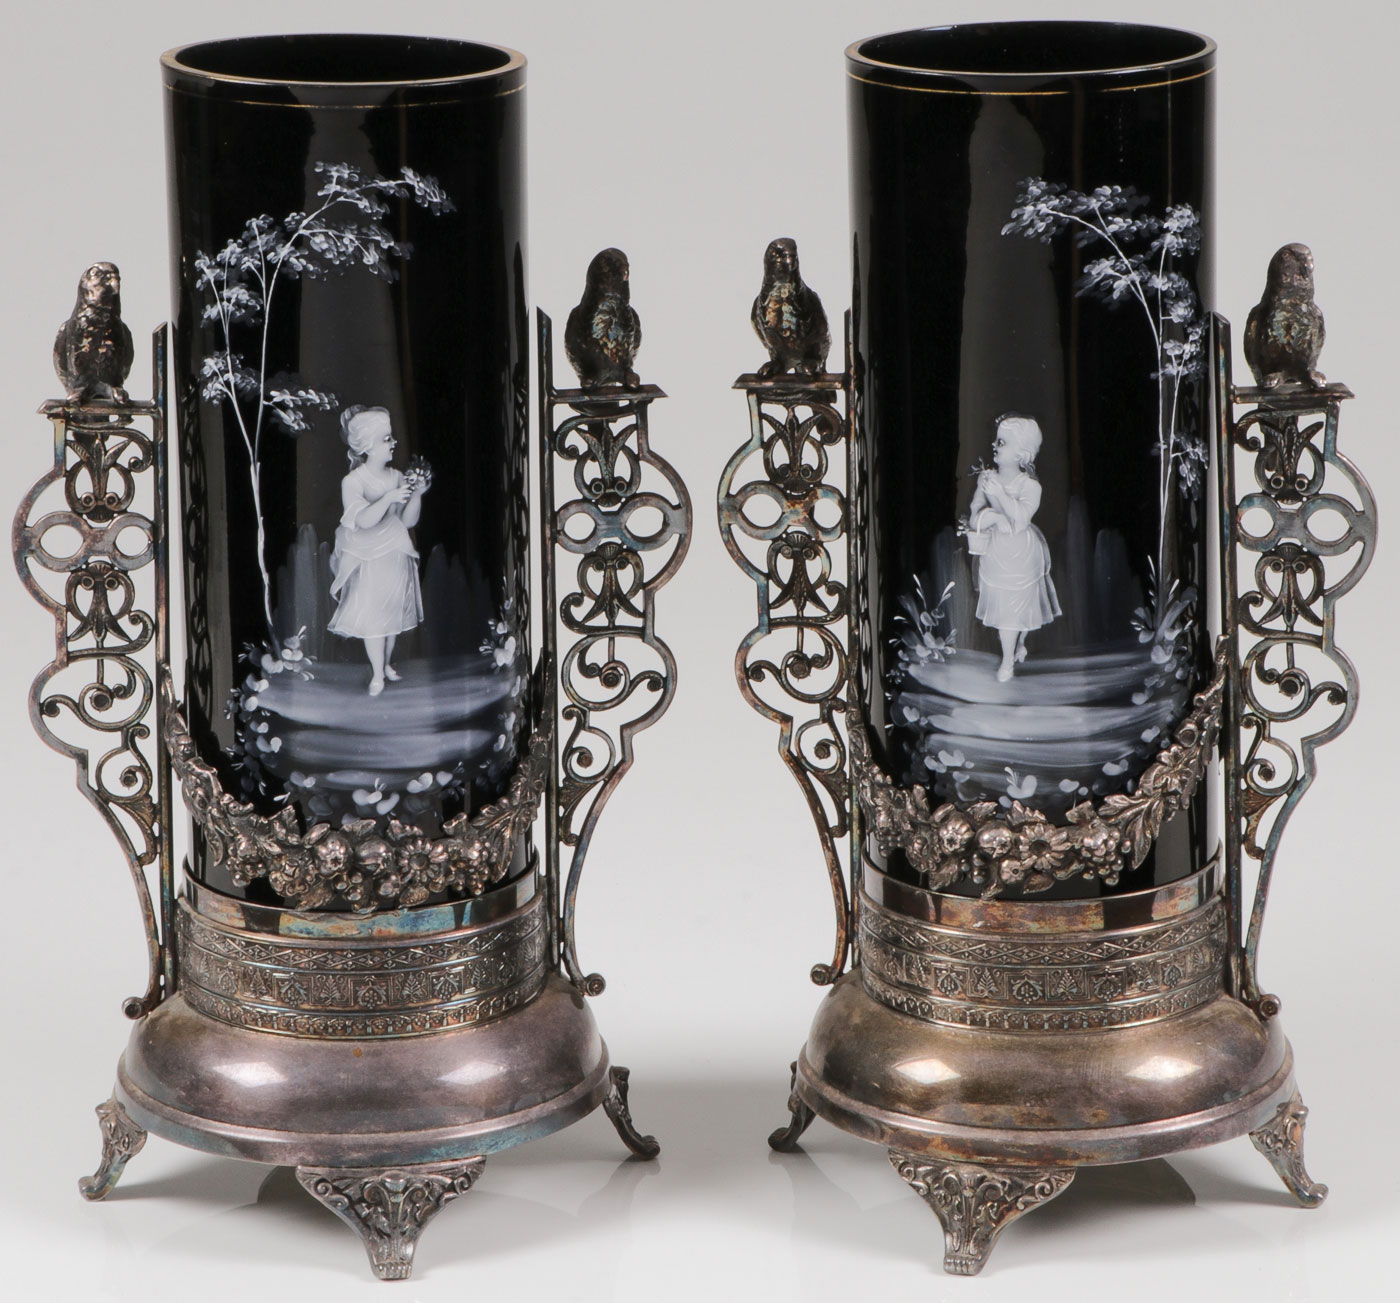 Lot 52 - EXCEPTIONAL MARY GREGORY MANTLE VASES, C. 1880